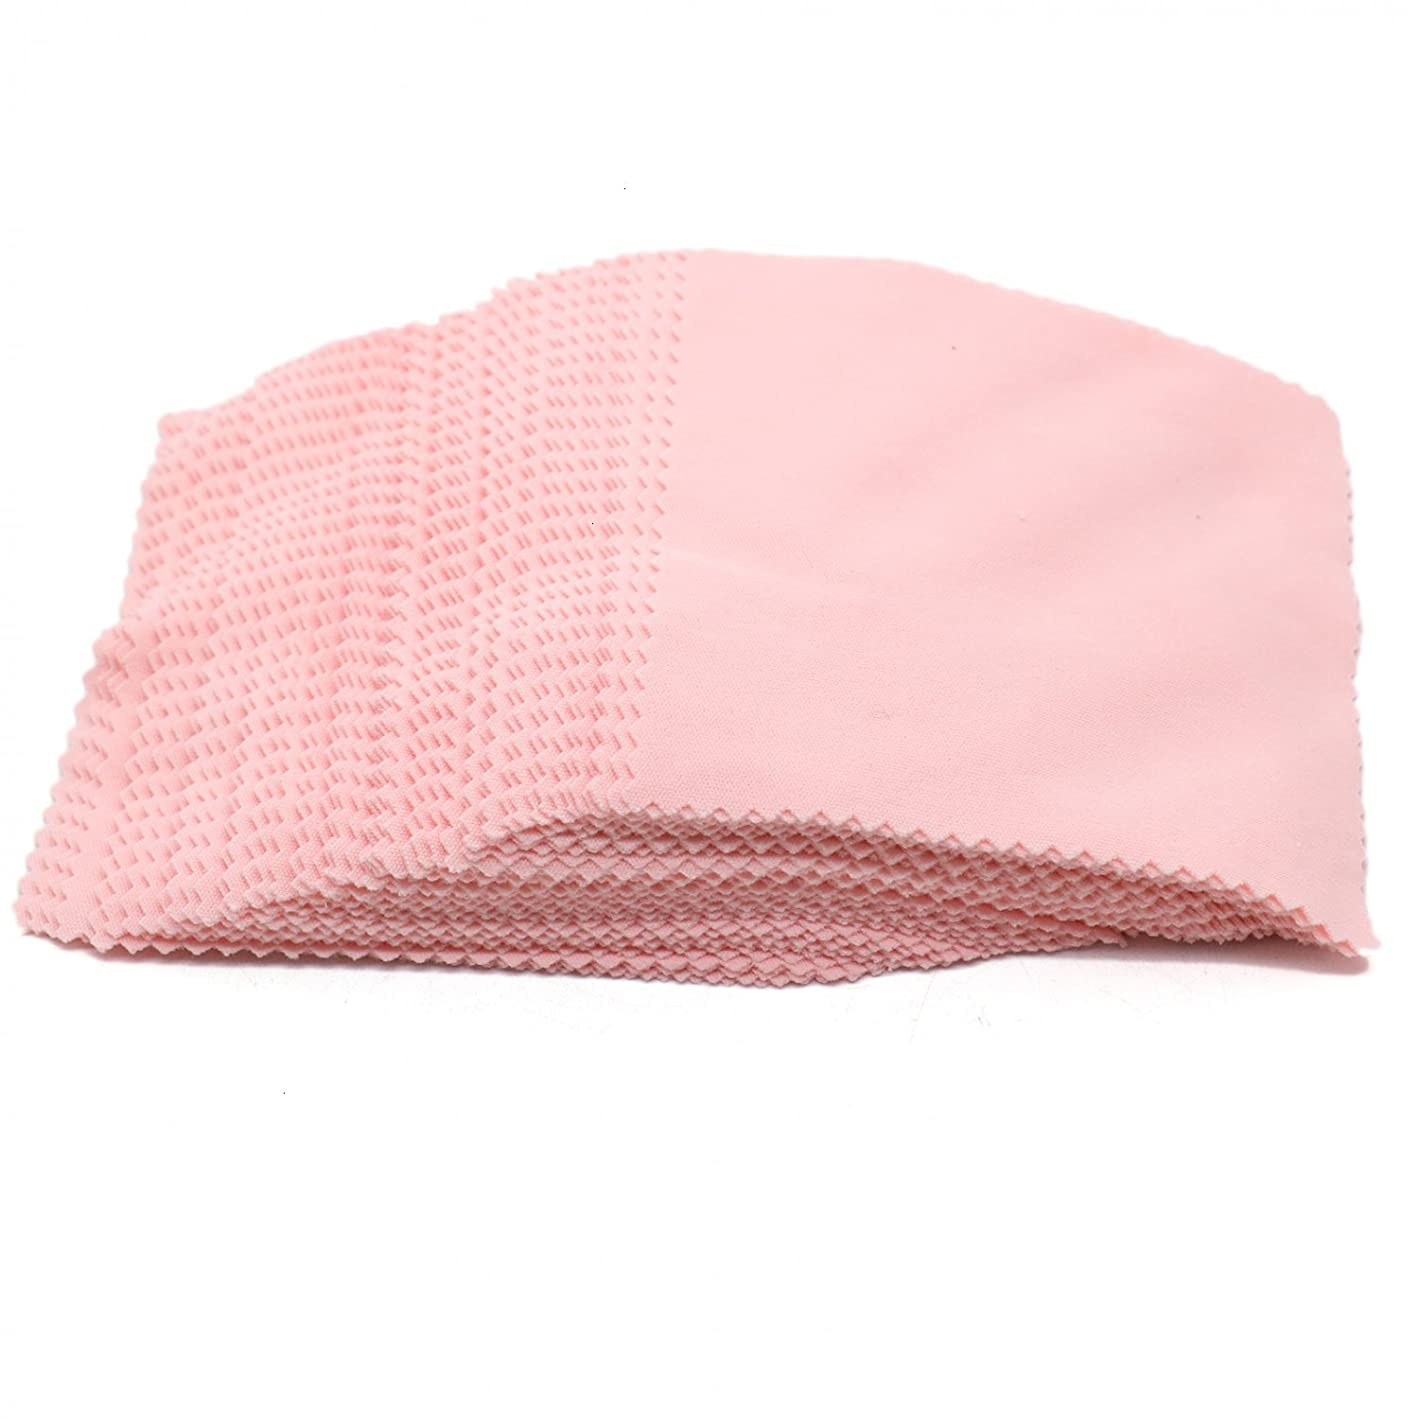 Rugjut 100 PCS Jewelry Cleaning Cloth Polishing Cloth for Silver Gold and Platinum Jewelry (Pink) o53948044783328